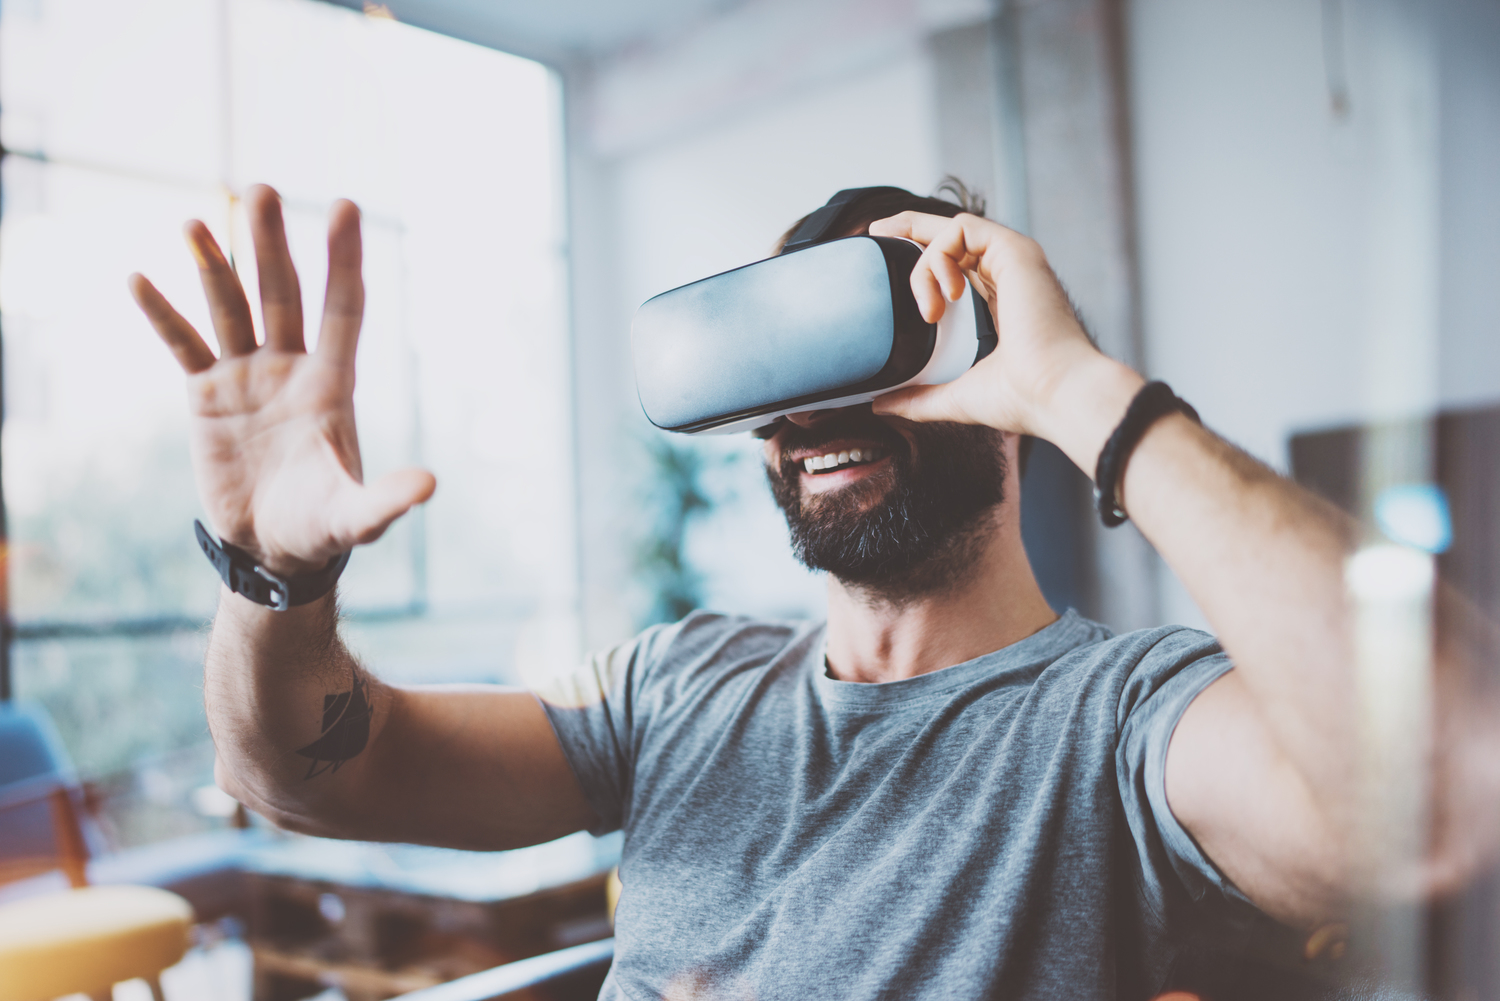 5 Ways Virtual Reality Will Impact Business in 2018